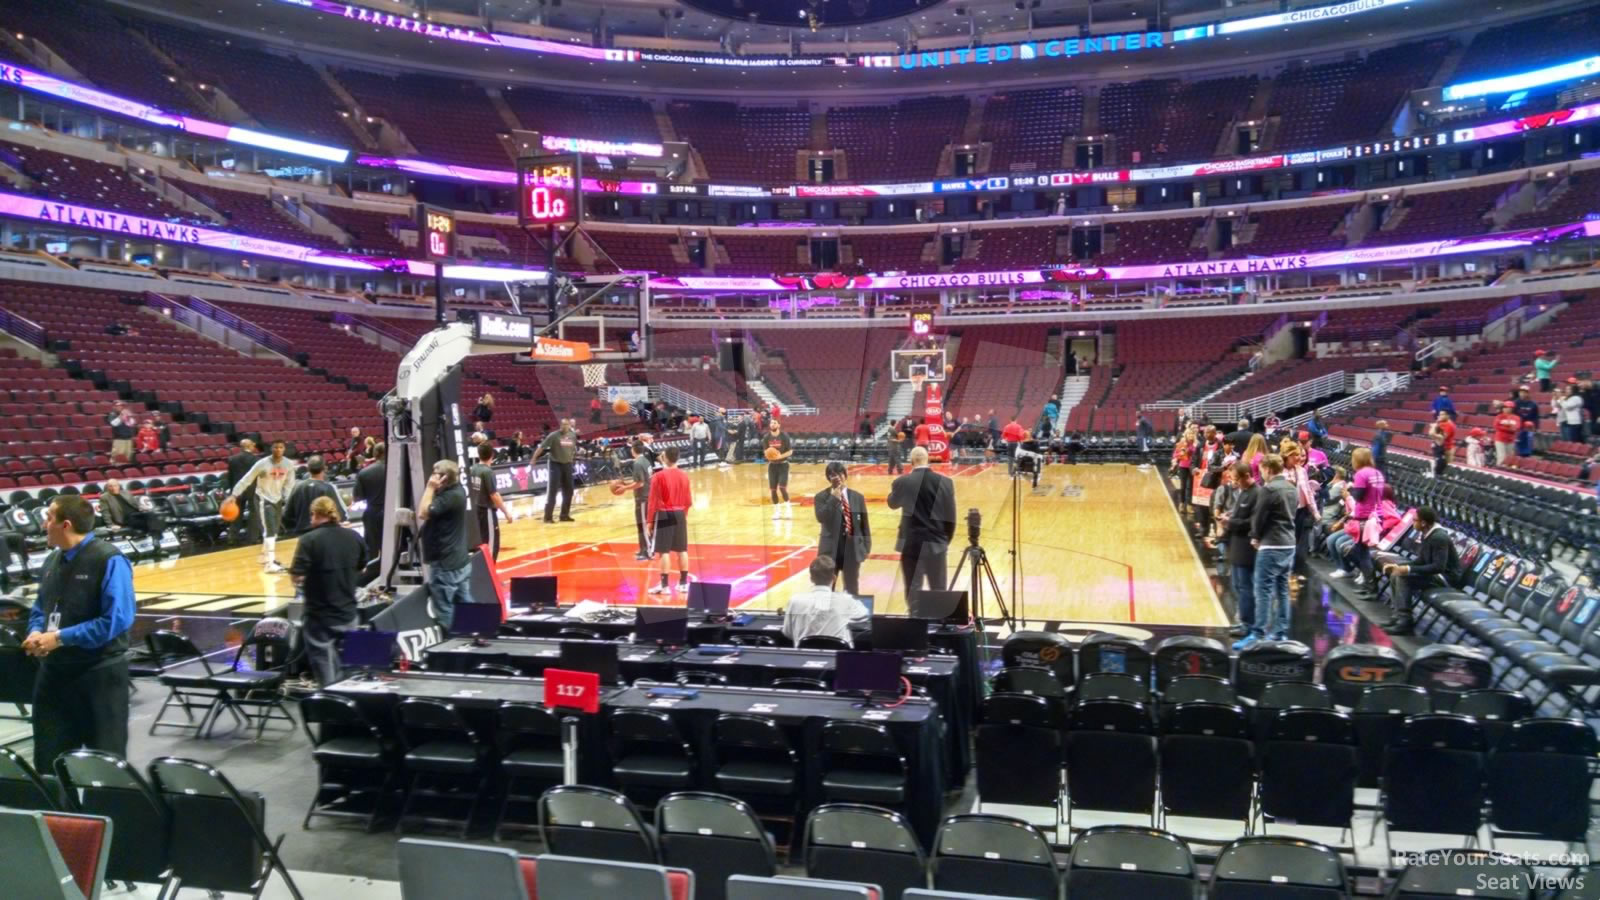 Chicago Bulls - United Center Section 116 - RateYourSeats.com